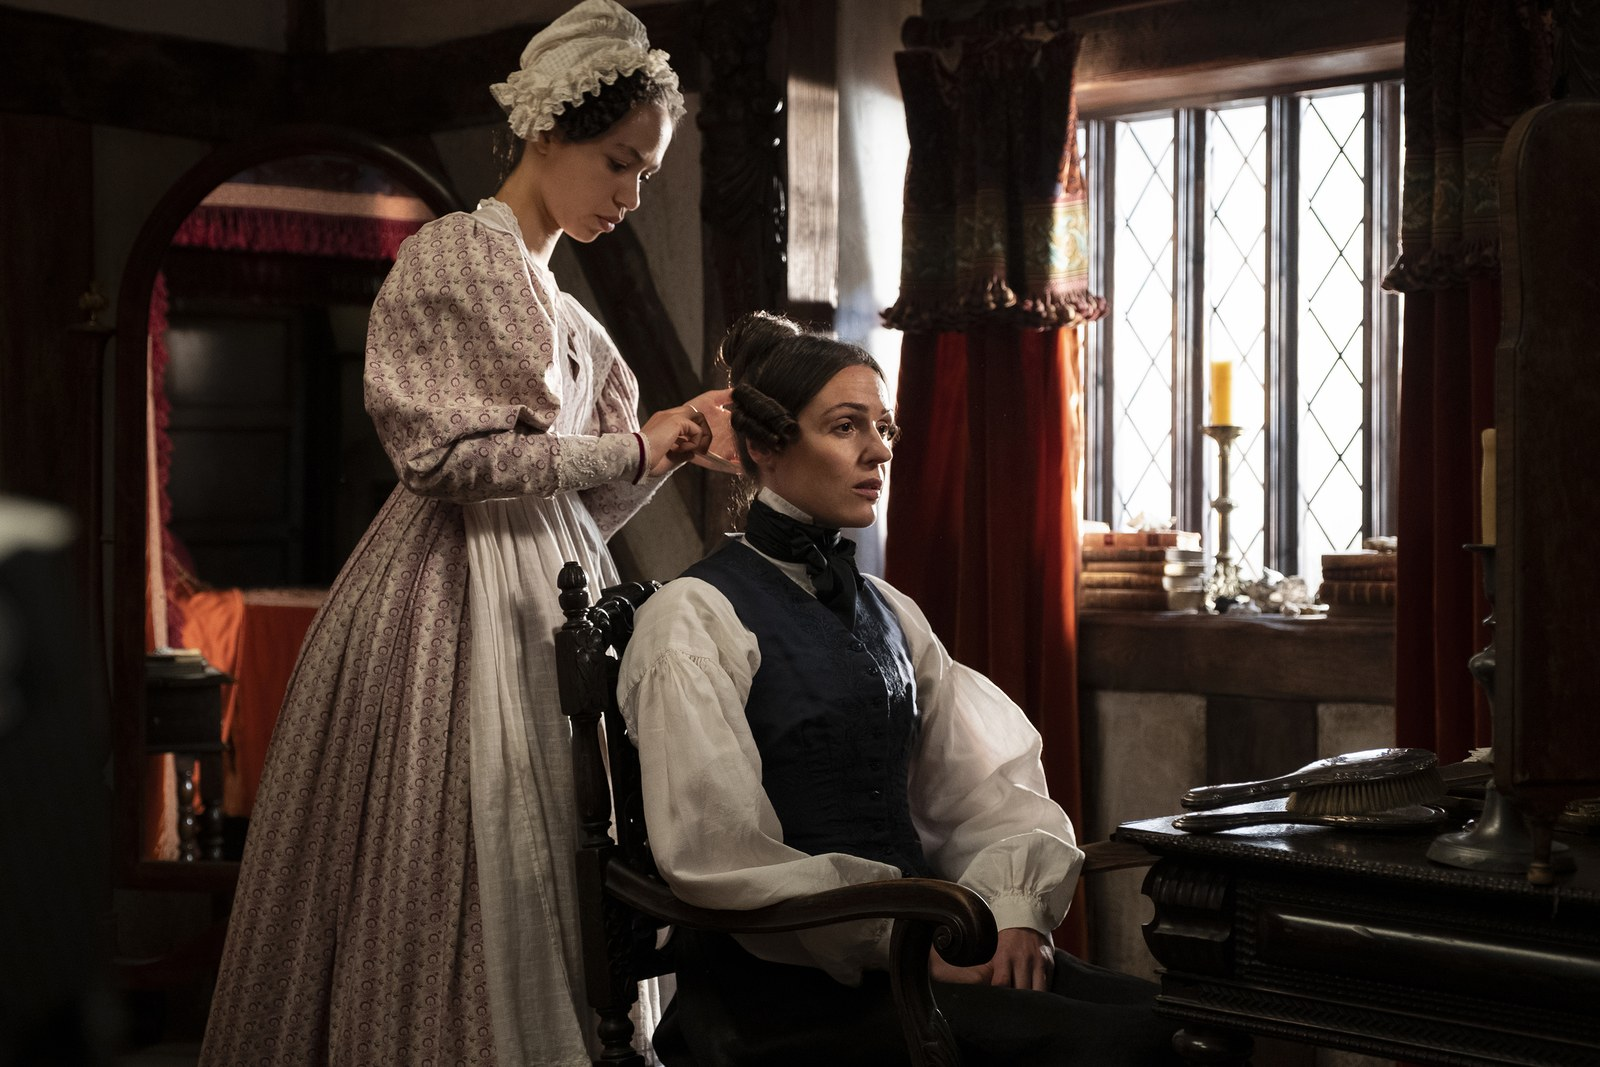 A scene from Gentleman Jack on HBO